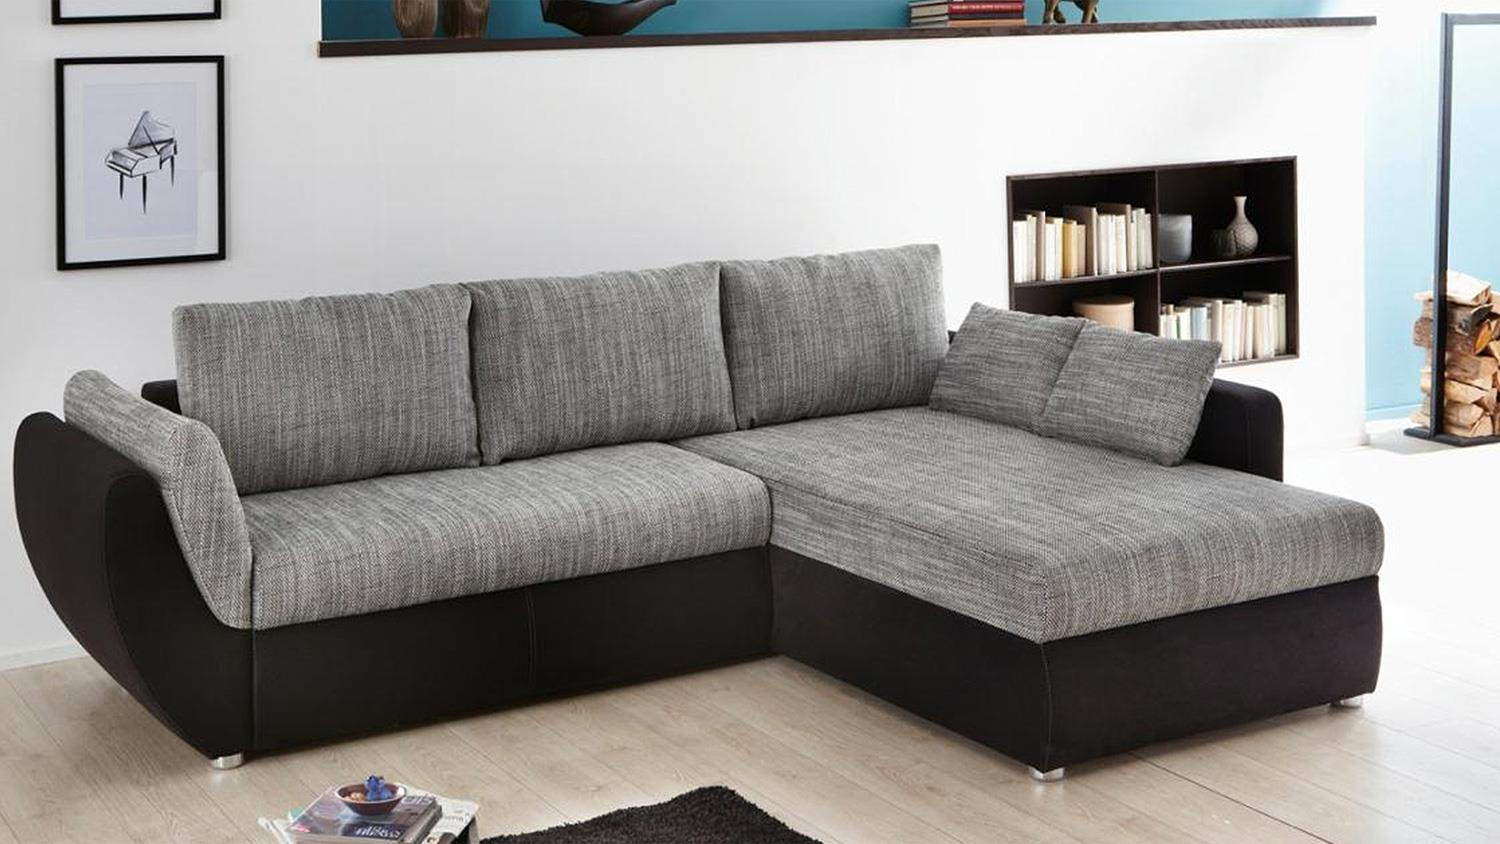 wohnlandschaft taifun ecksofa schwarz grau bettfunktion. Black Bedroom Furniture Sets. Home Design Ideas